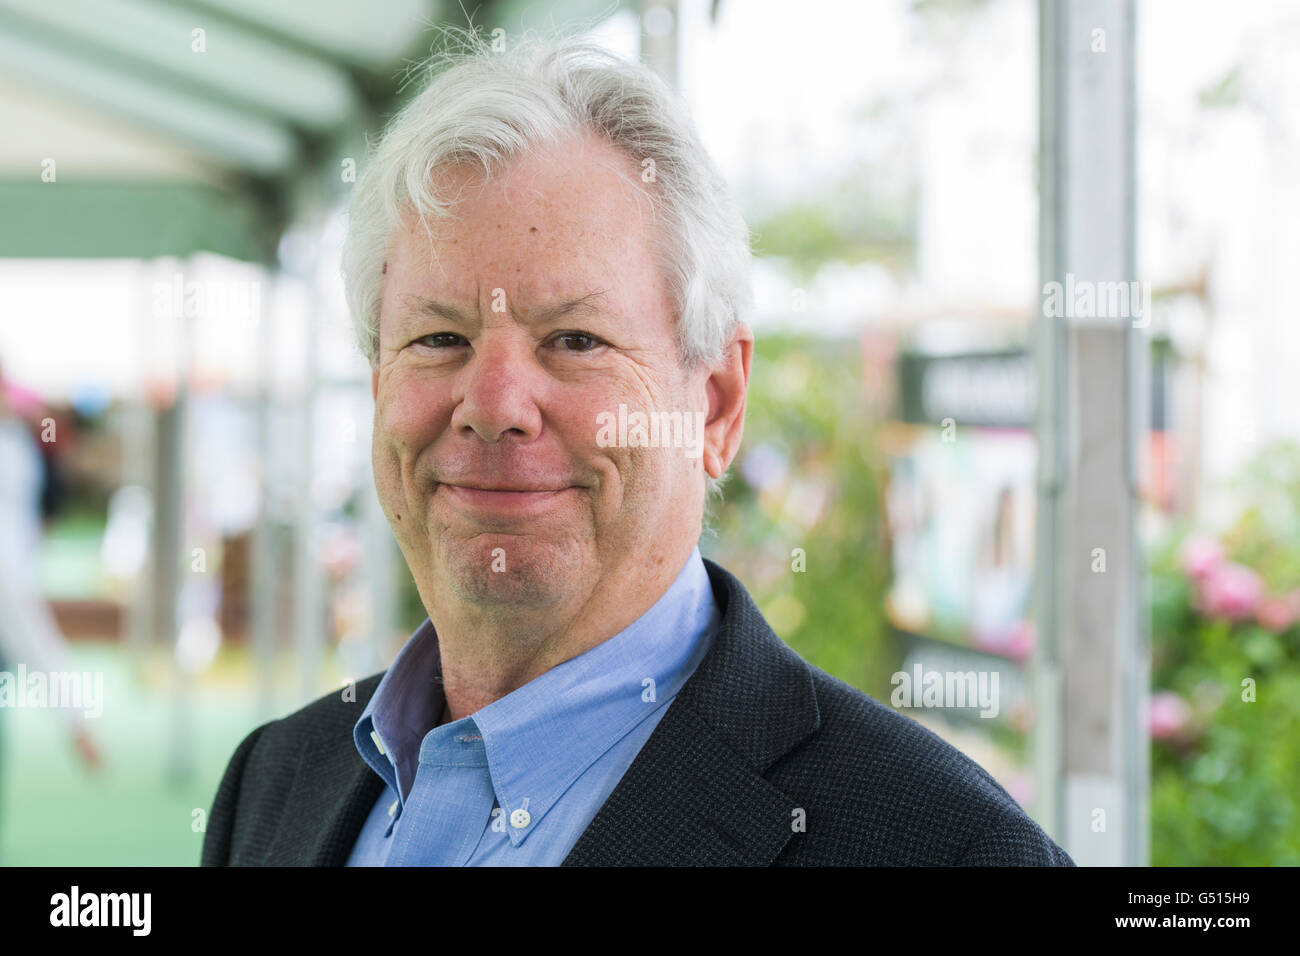 Richard H. Thaler. American economist and the Ralph and Dorothy Keller Distinguished Service Professor of Behavioral - Stock Image